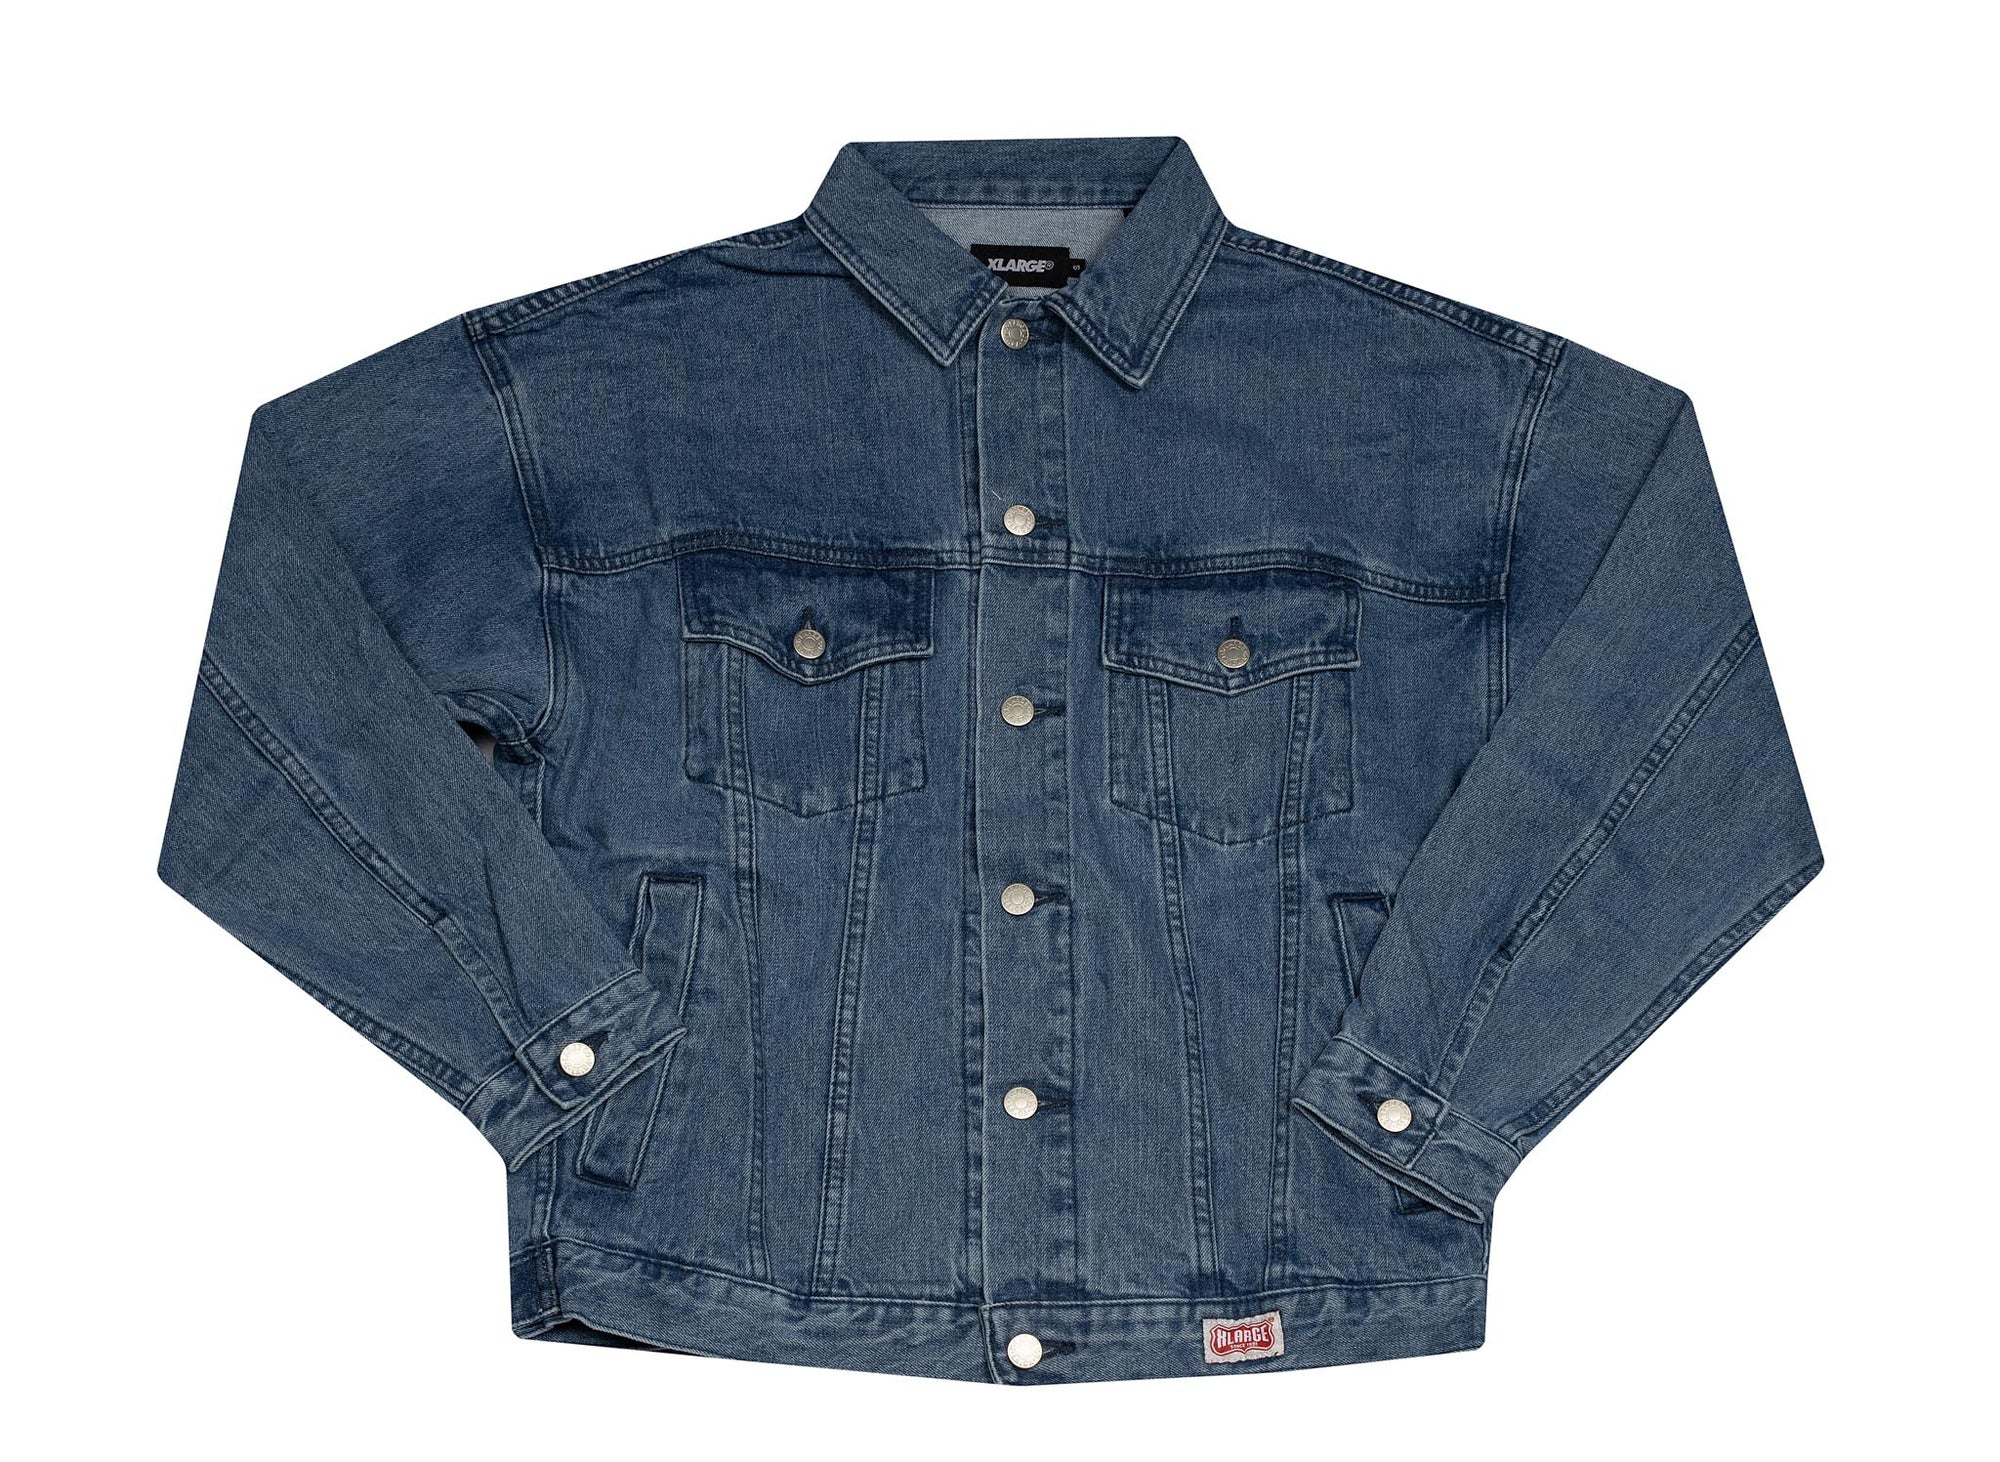 X-LARGE DENIM TRUCKER JACKET INDIGO